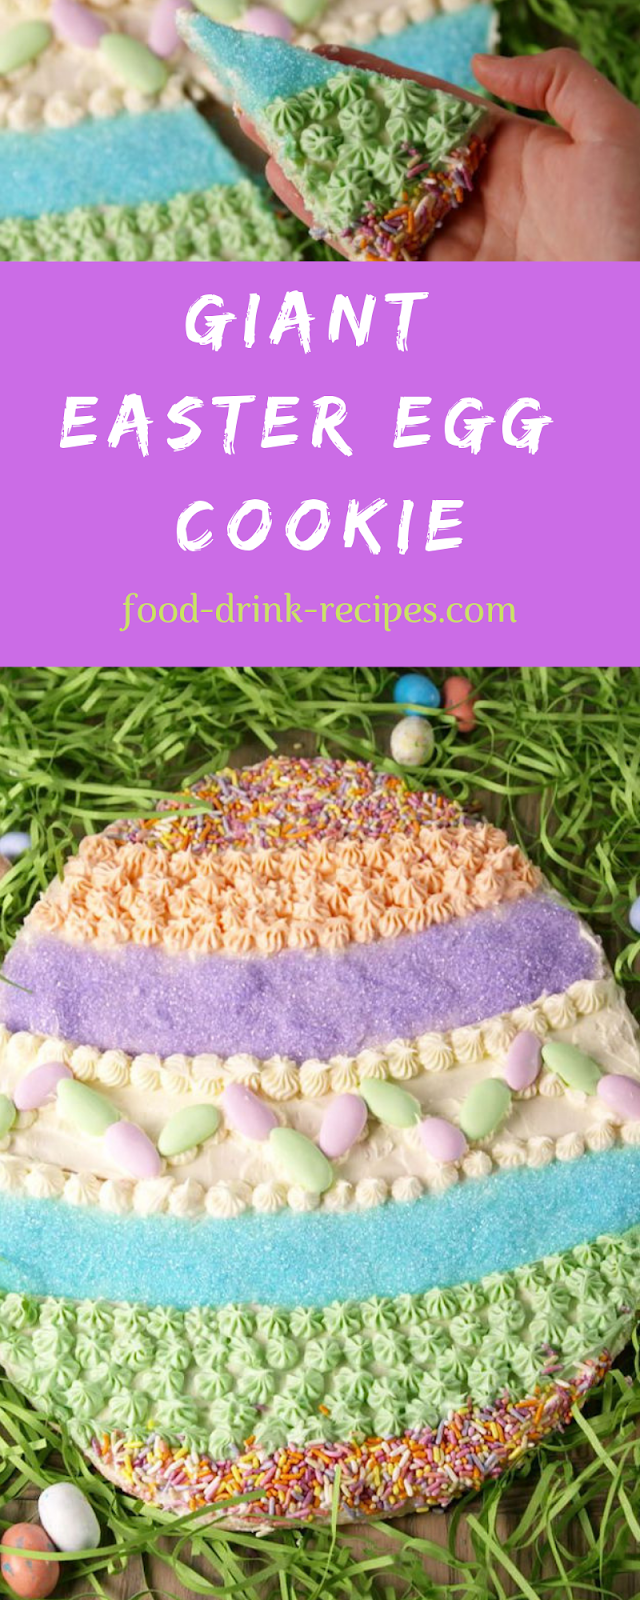 Giant Easter Egg Cookie - food-drink-recipes.com